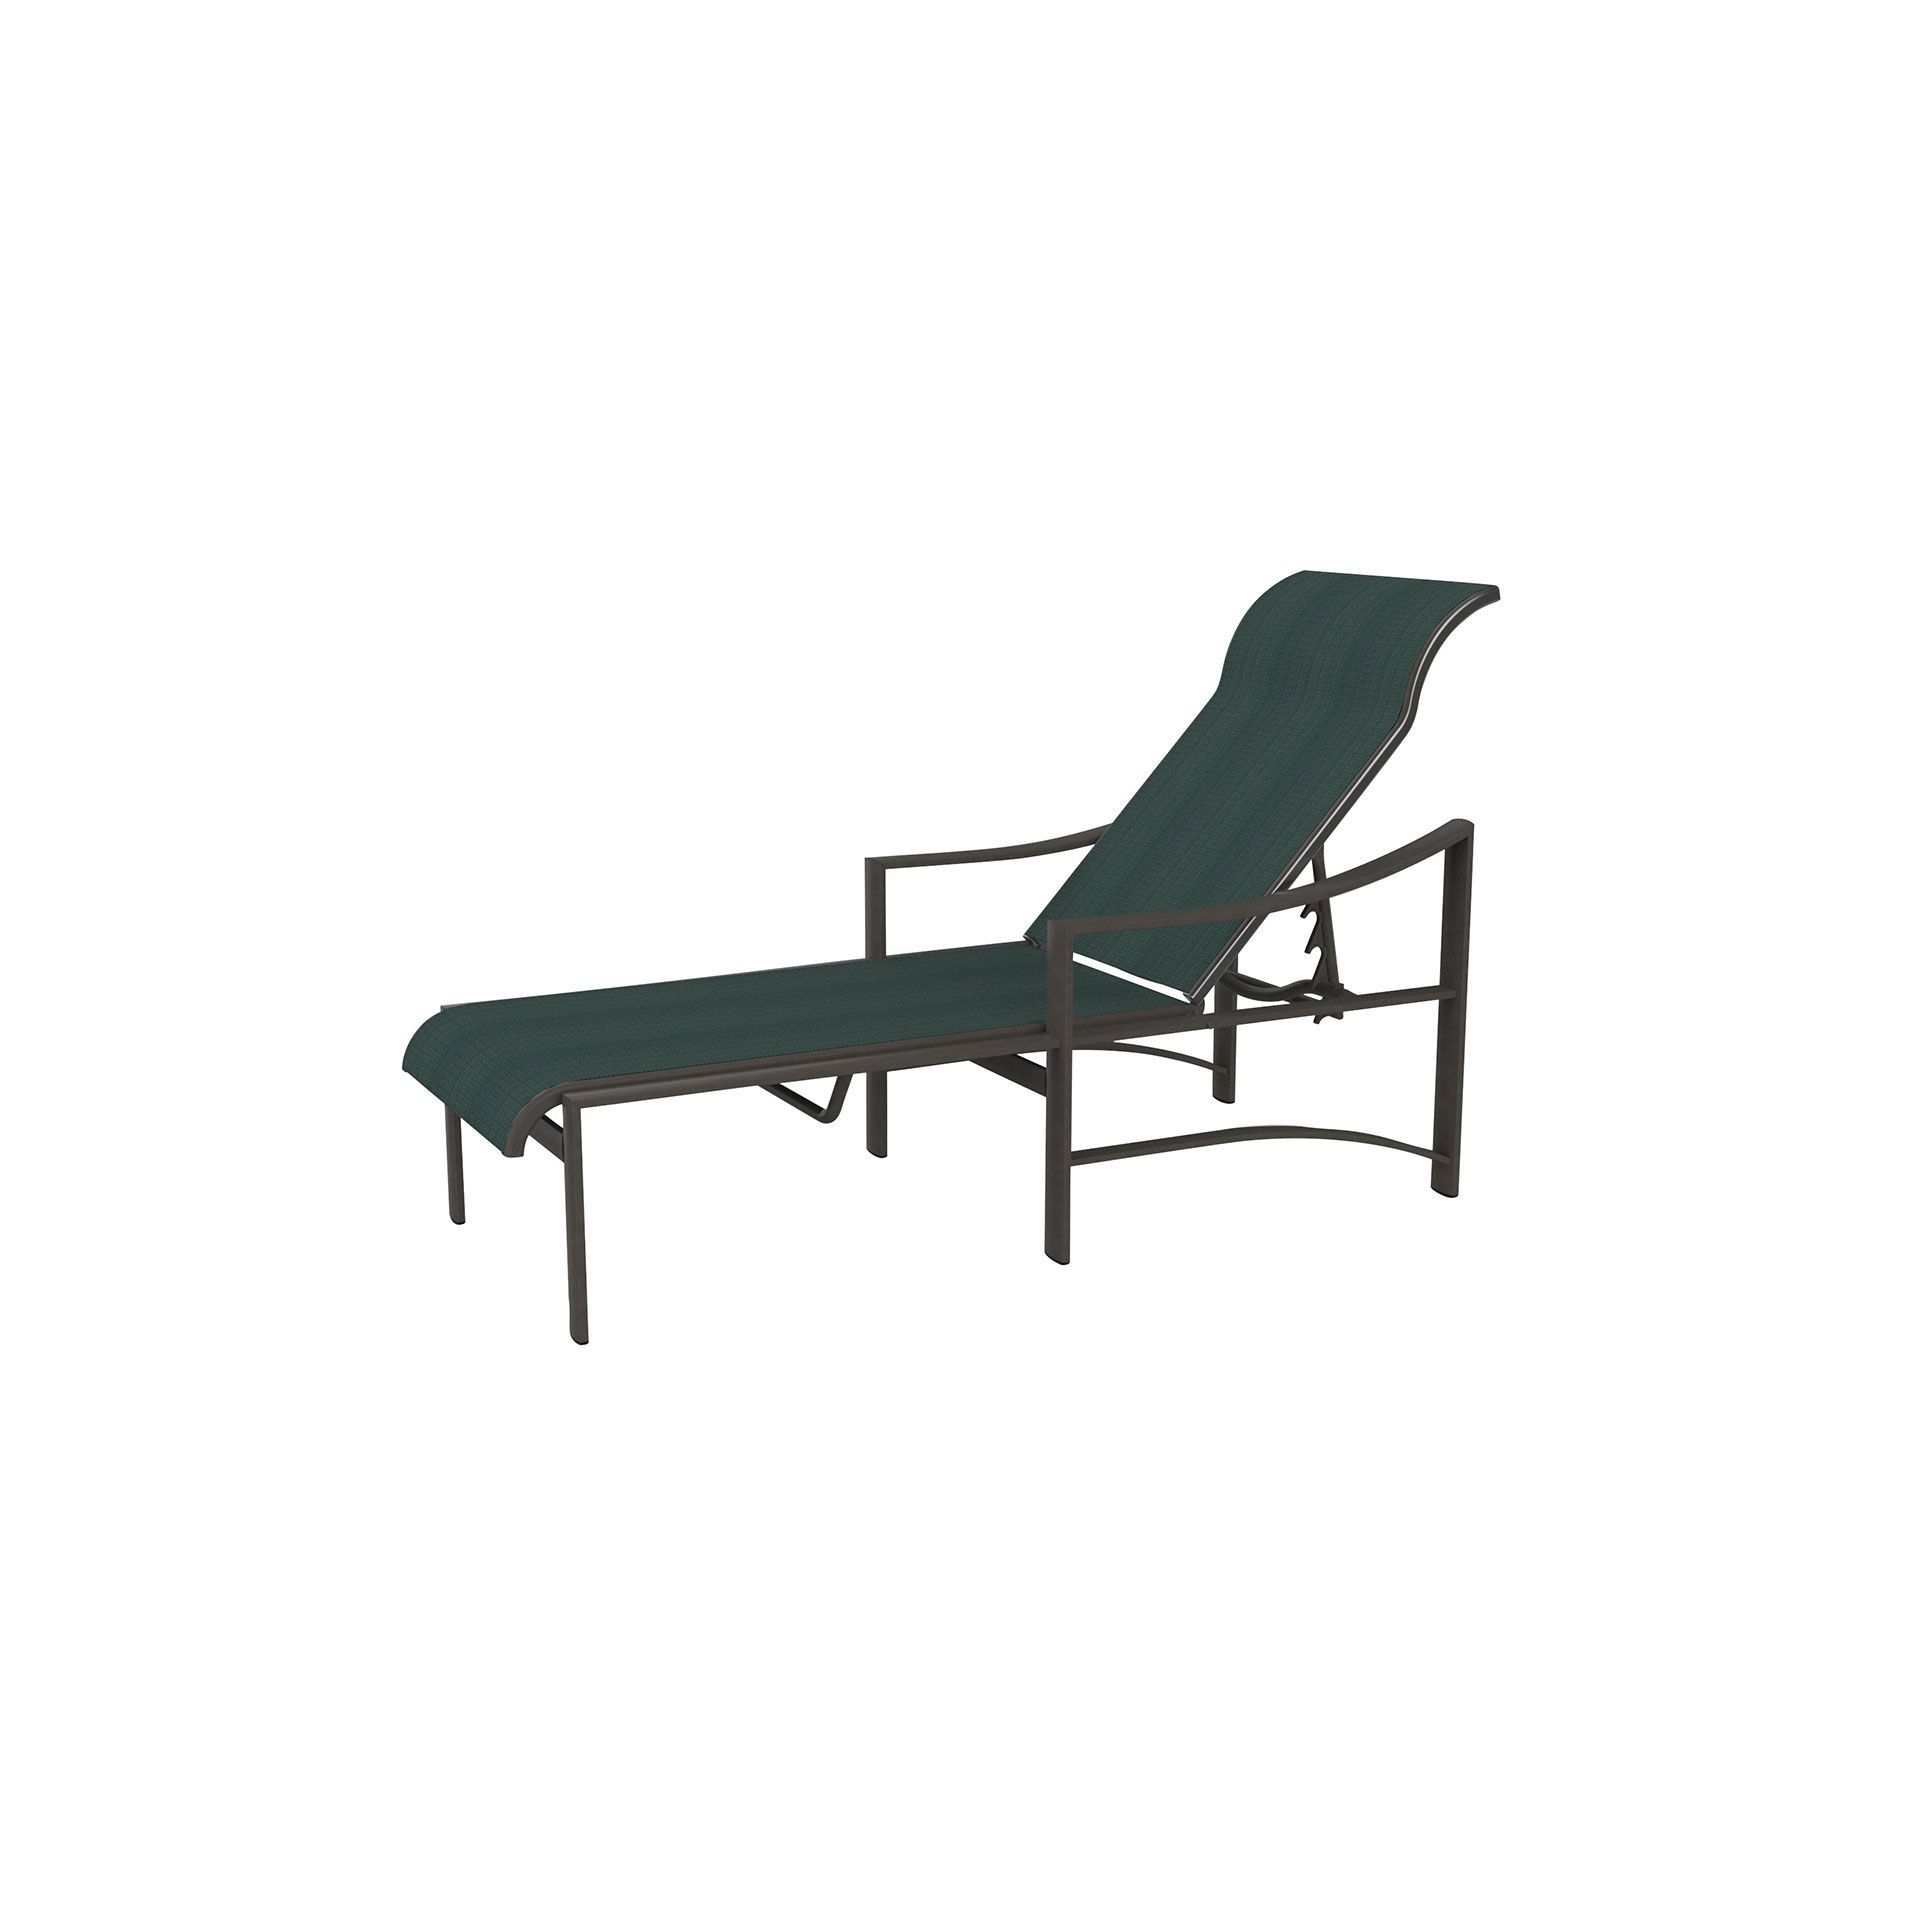 Tropitone Chaise Lounges With Well Known Tropitone Kenzo Sling Chaise Lounge – Leisure Living (View 6 of 15)